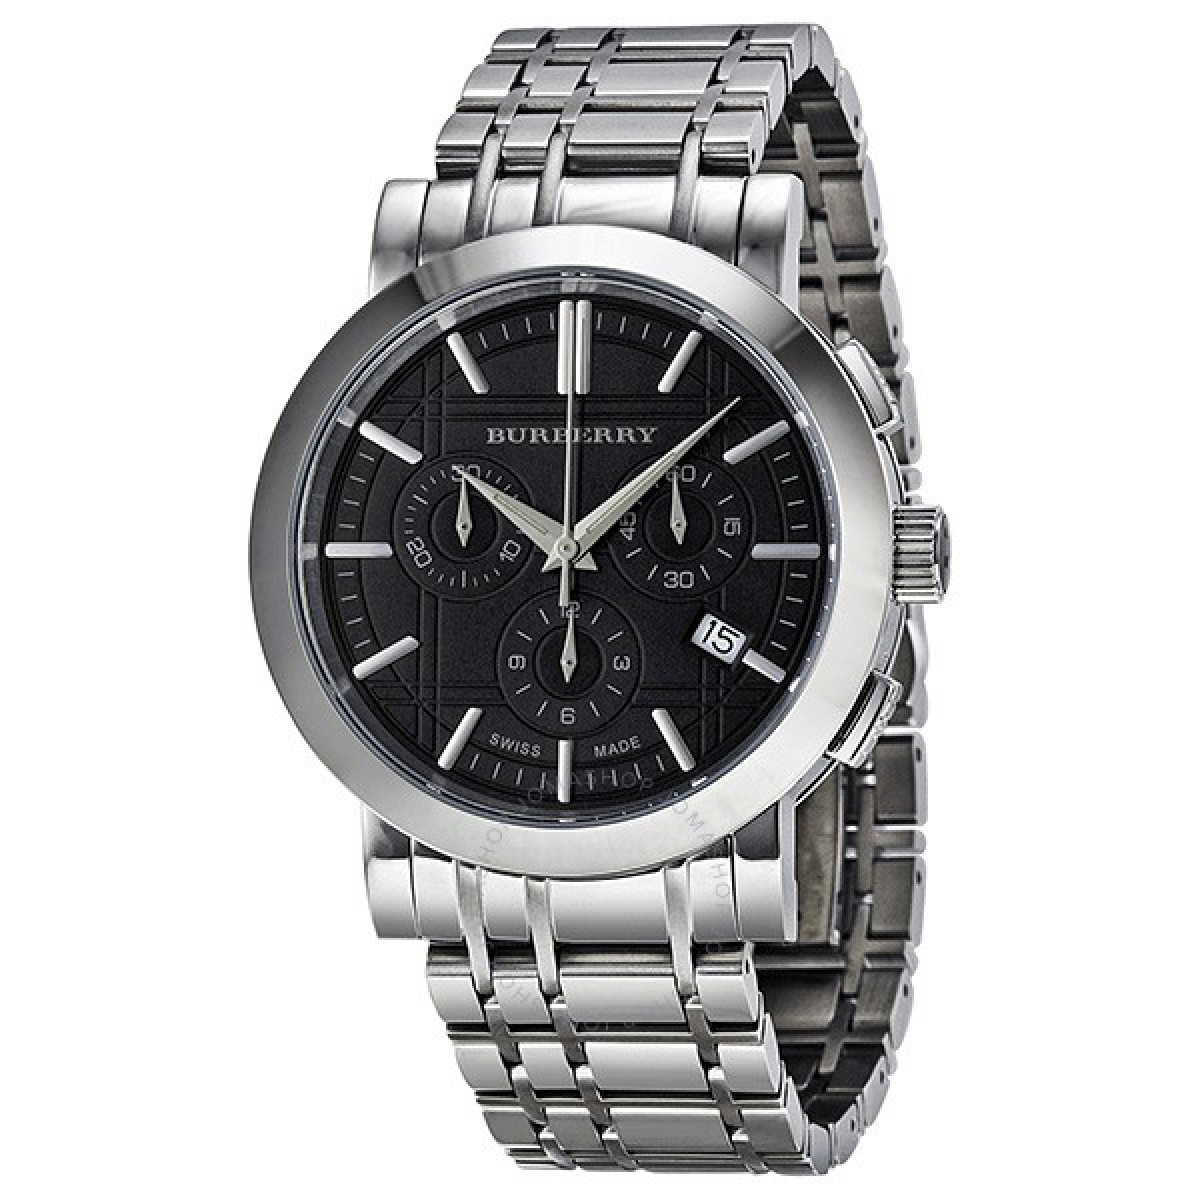 Mens Burberry Heritage Chronograph Watch BU1360